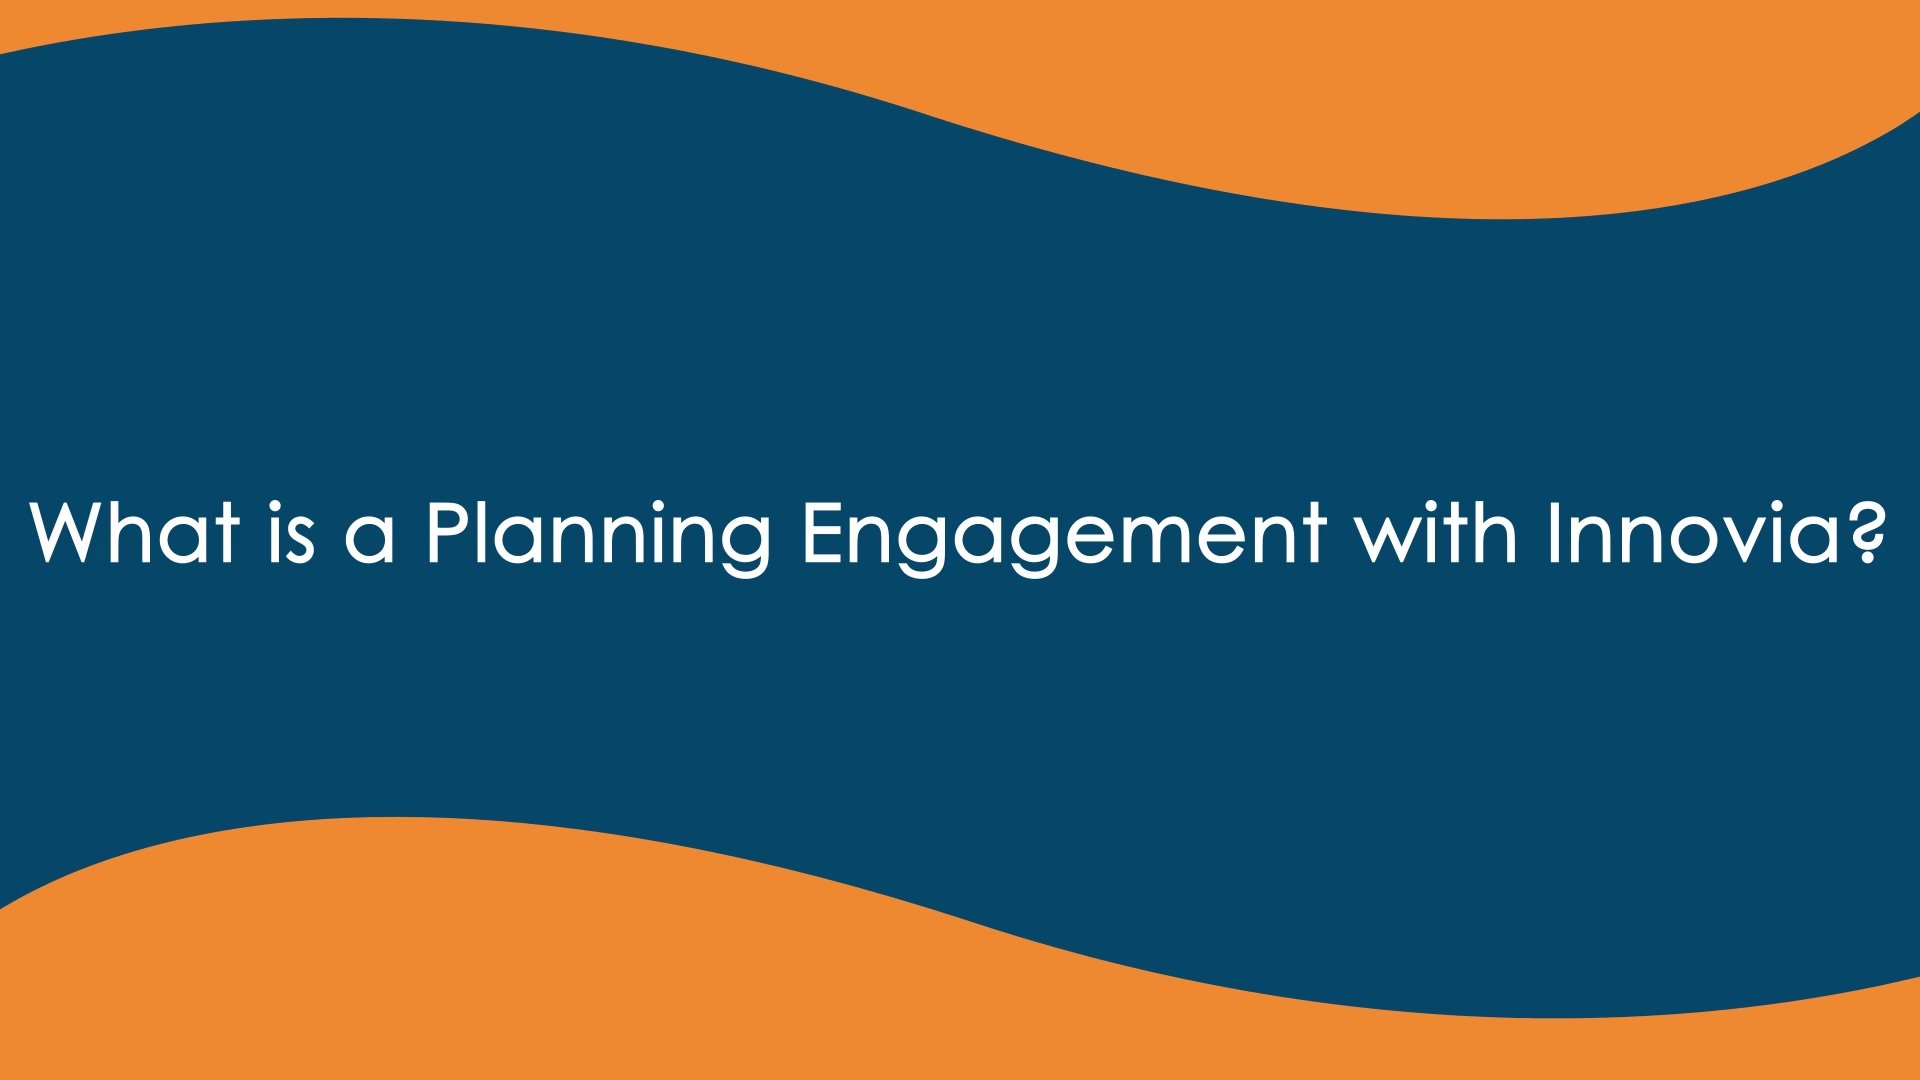 What is a Planning Engagement with Innovia - Final